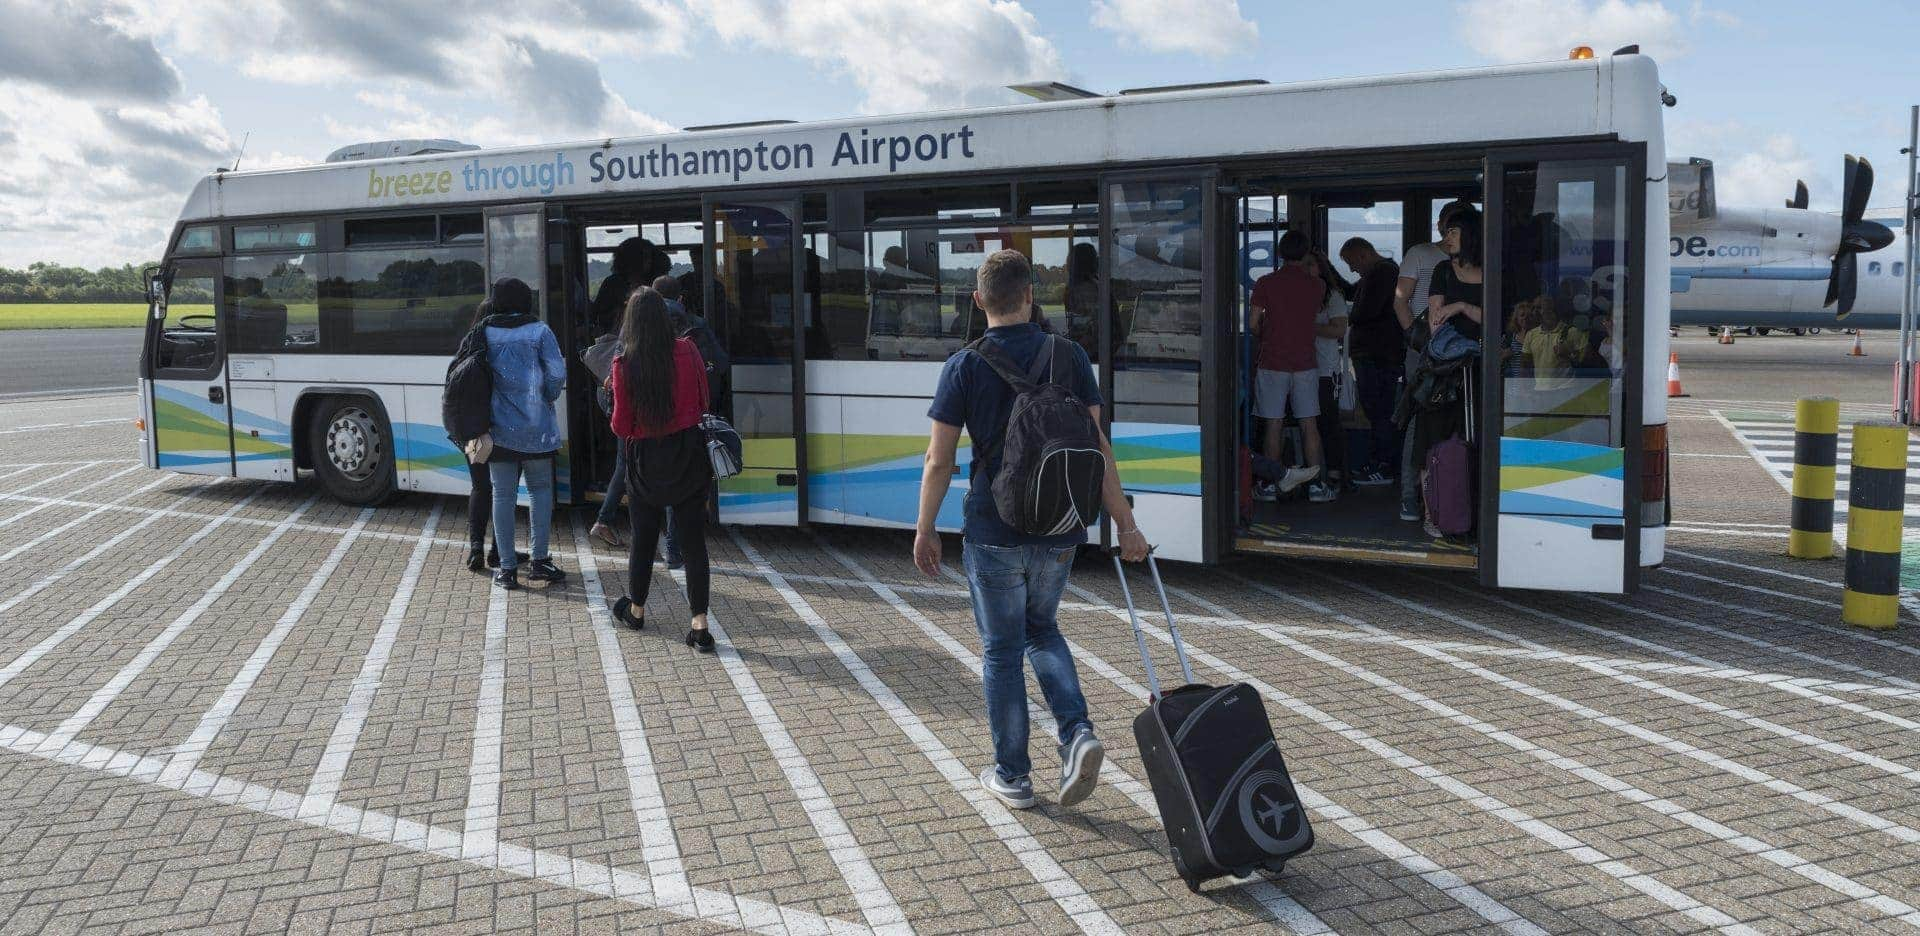 image of a passenger bus at southampton airport